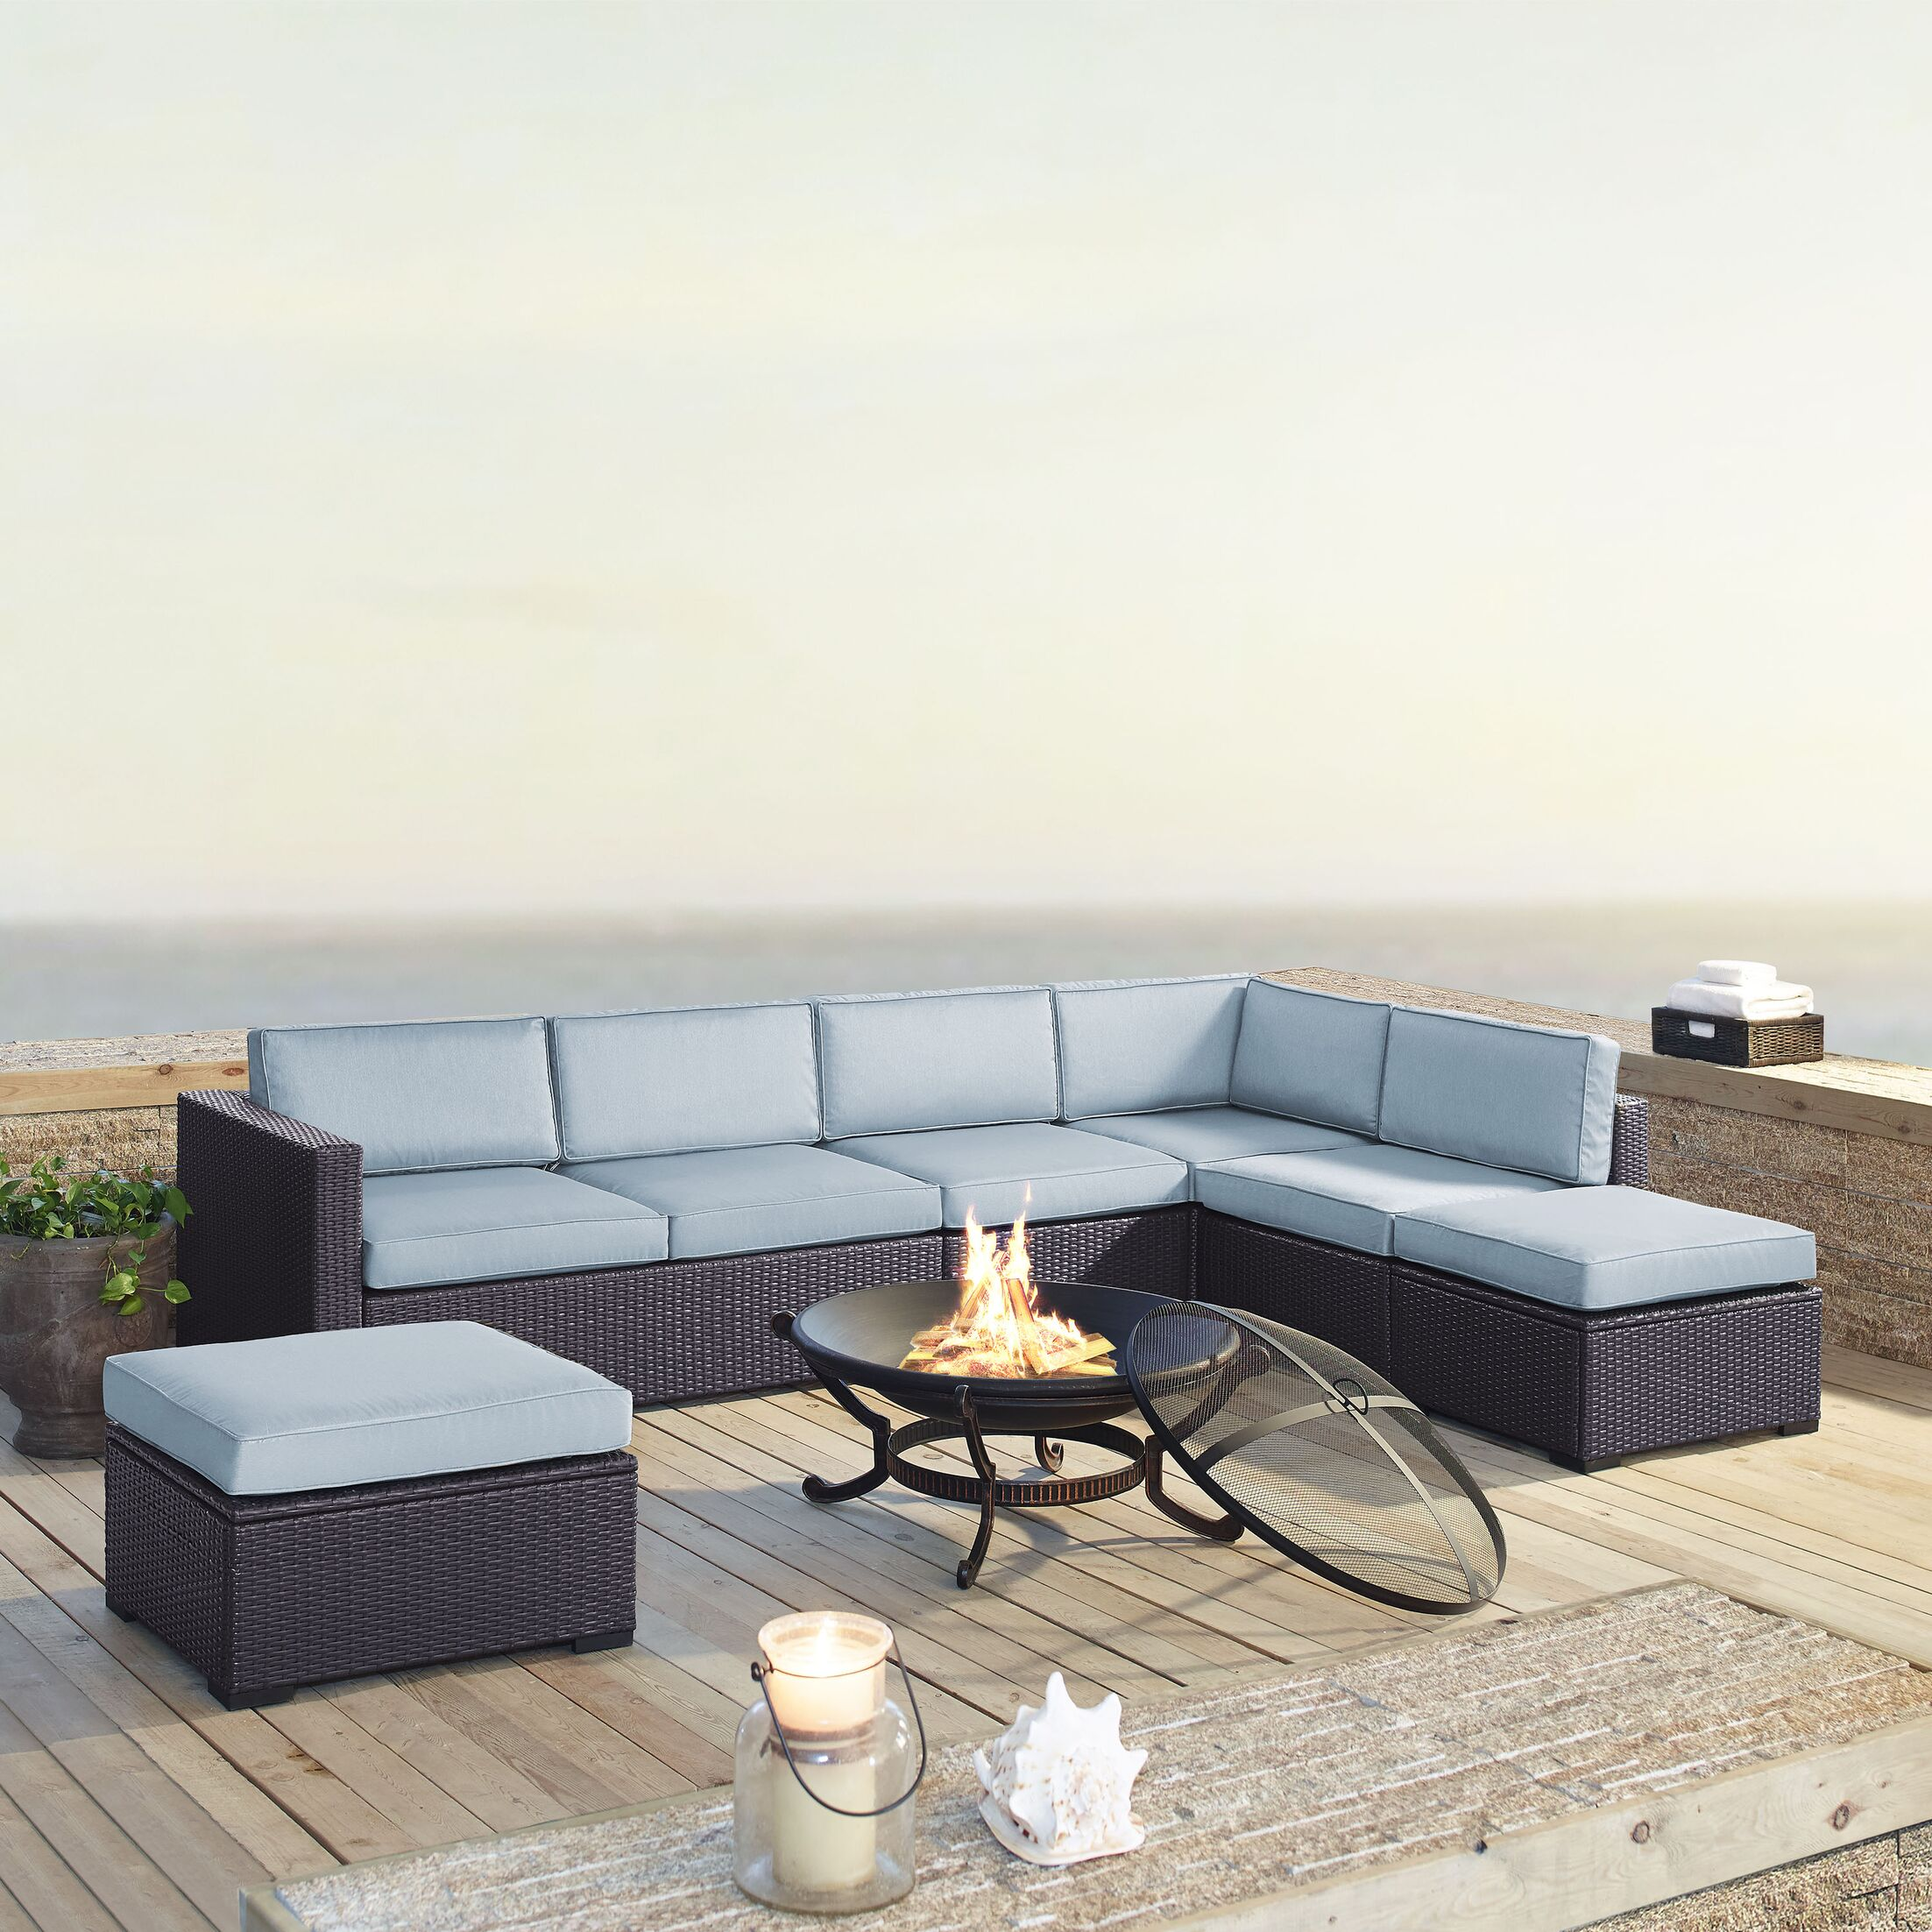 Dinah 6 Piece Sectional Set with Cushions Fabric: Mist